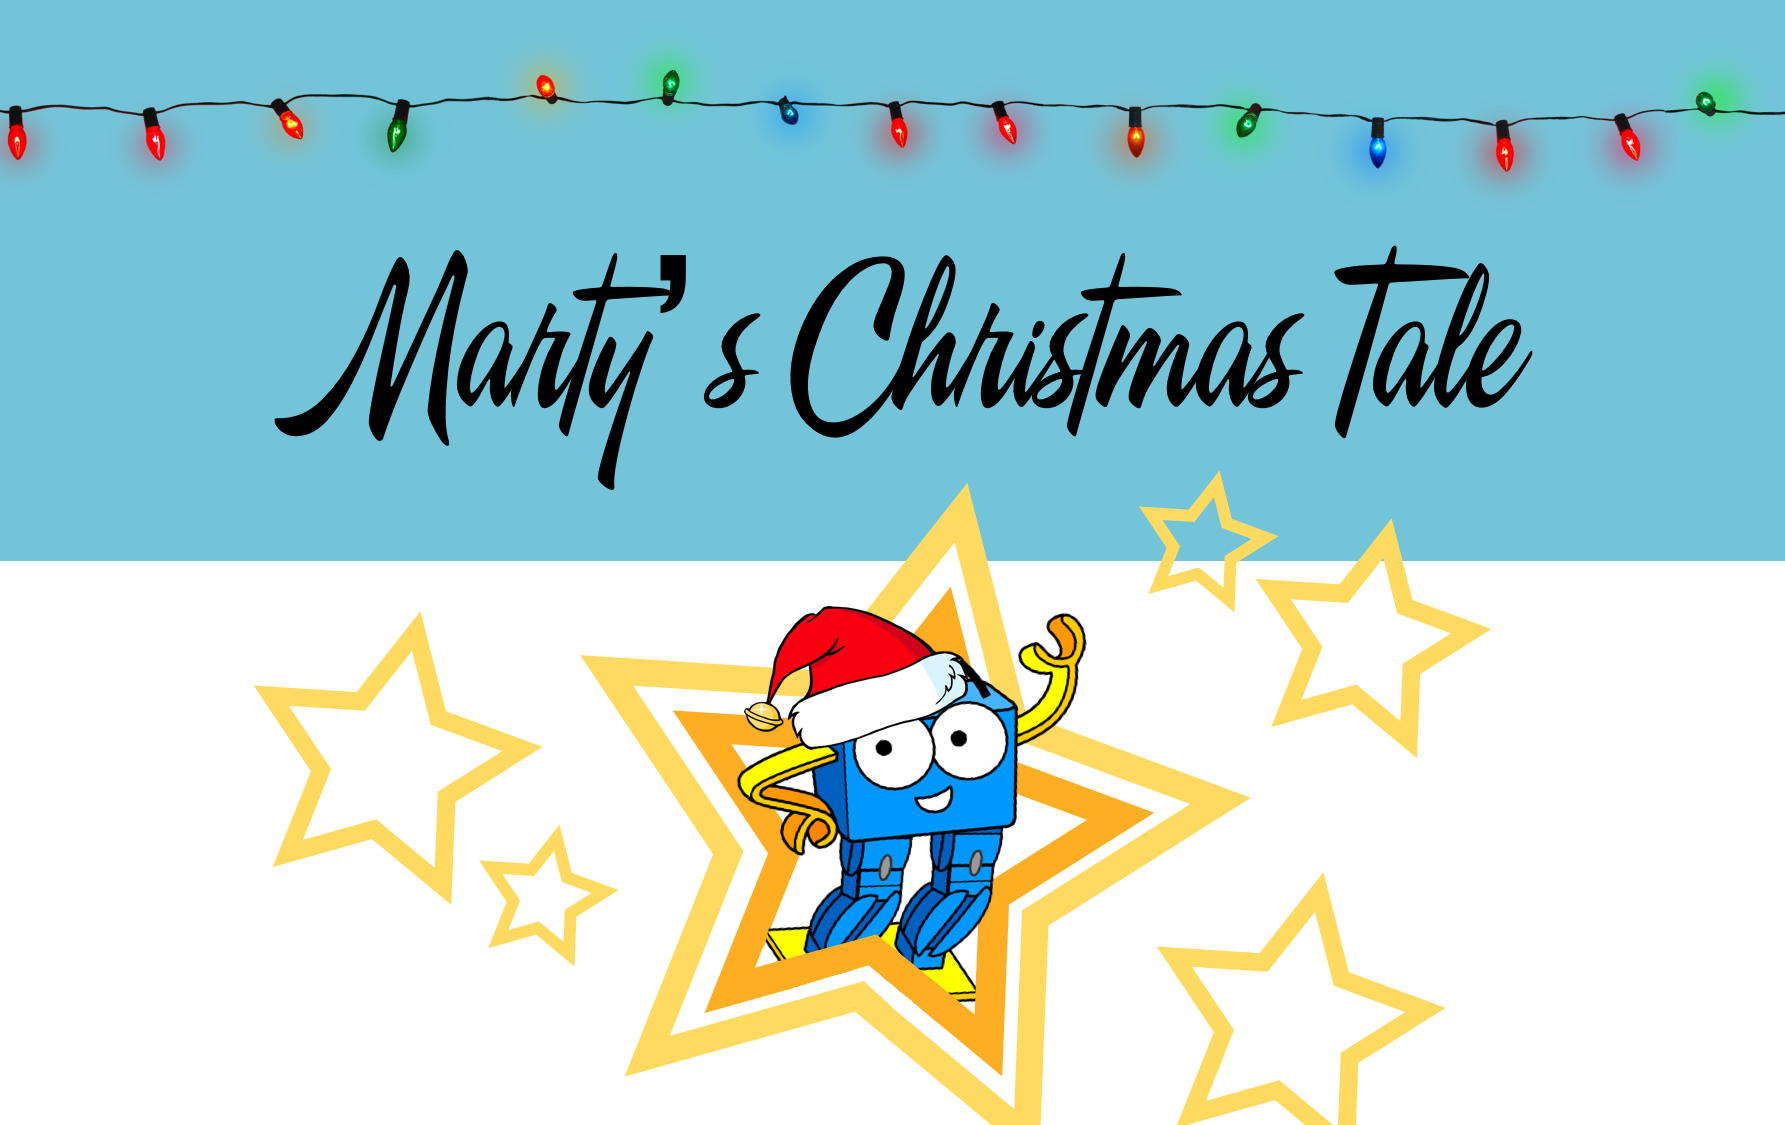 martys christmas tale lesson pack